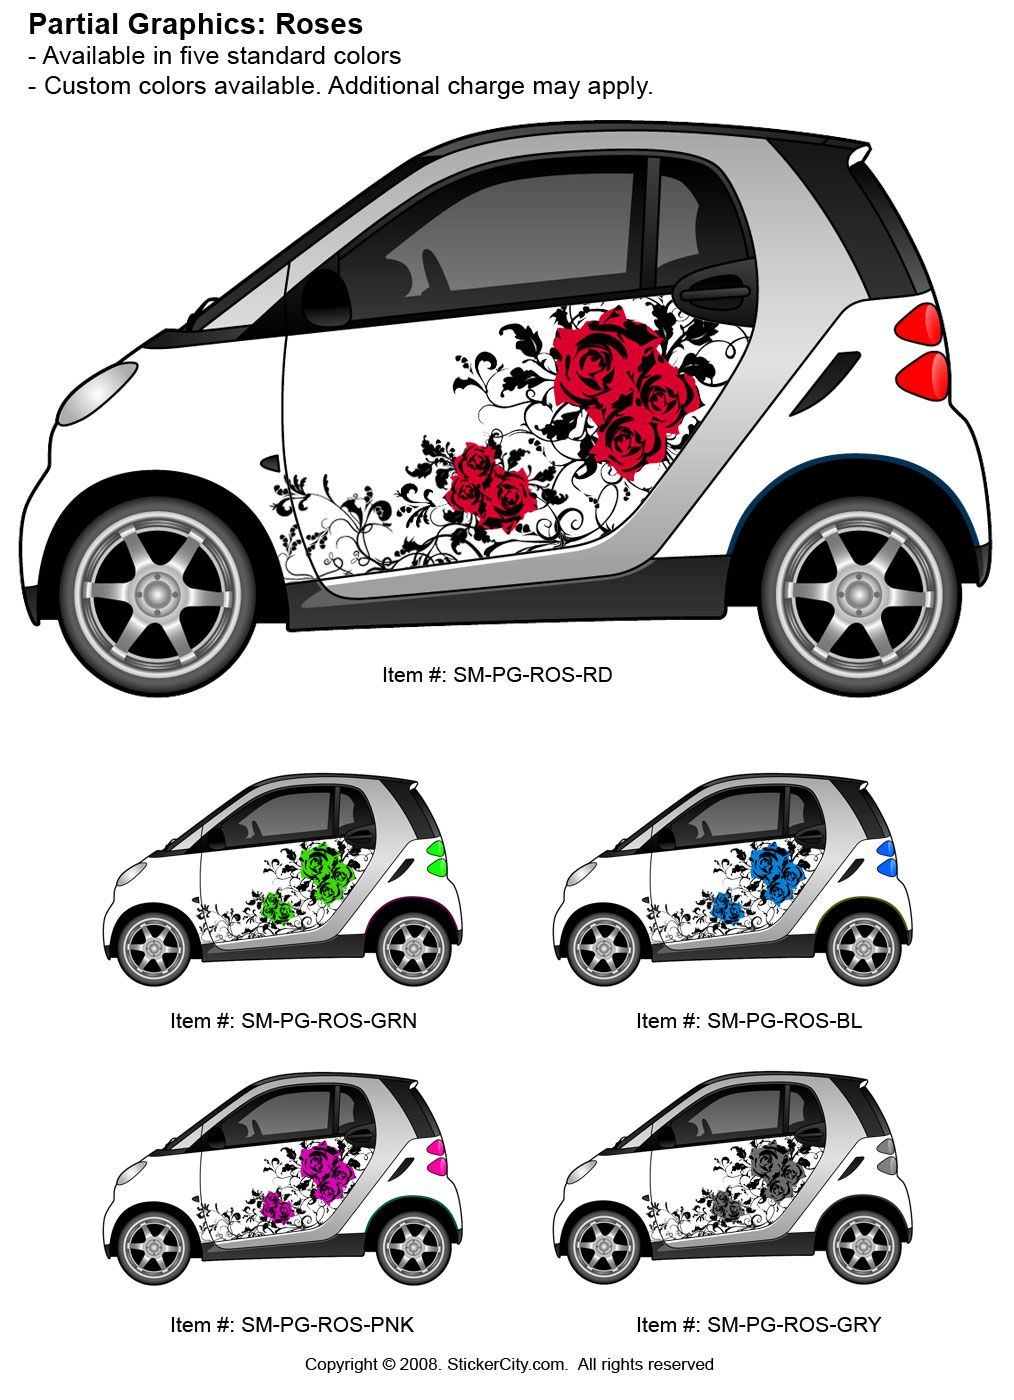 SMART CAR Vinyl Graphic Sticker Roses StickerCitycom Car - Custom decal graphics on vehiclesgetlaunched custom designed vinyl graphics decals turn heads and